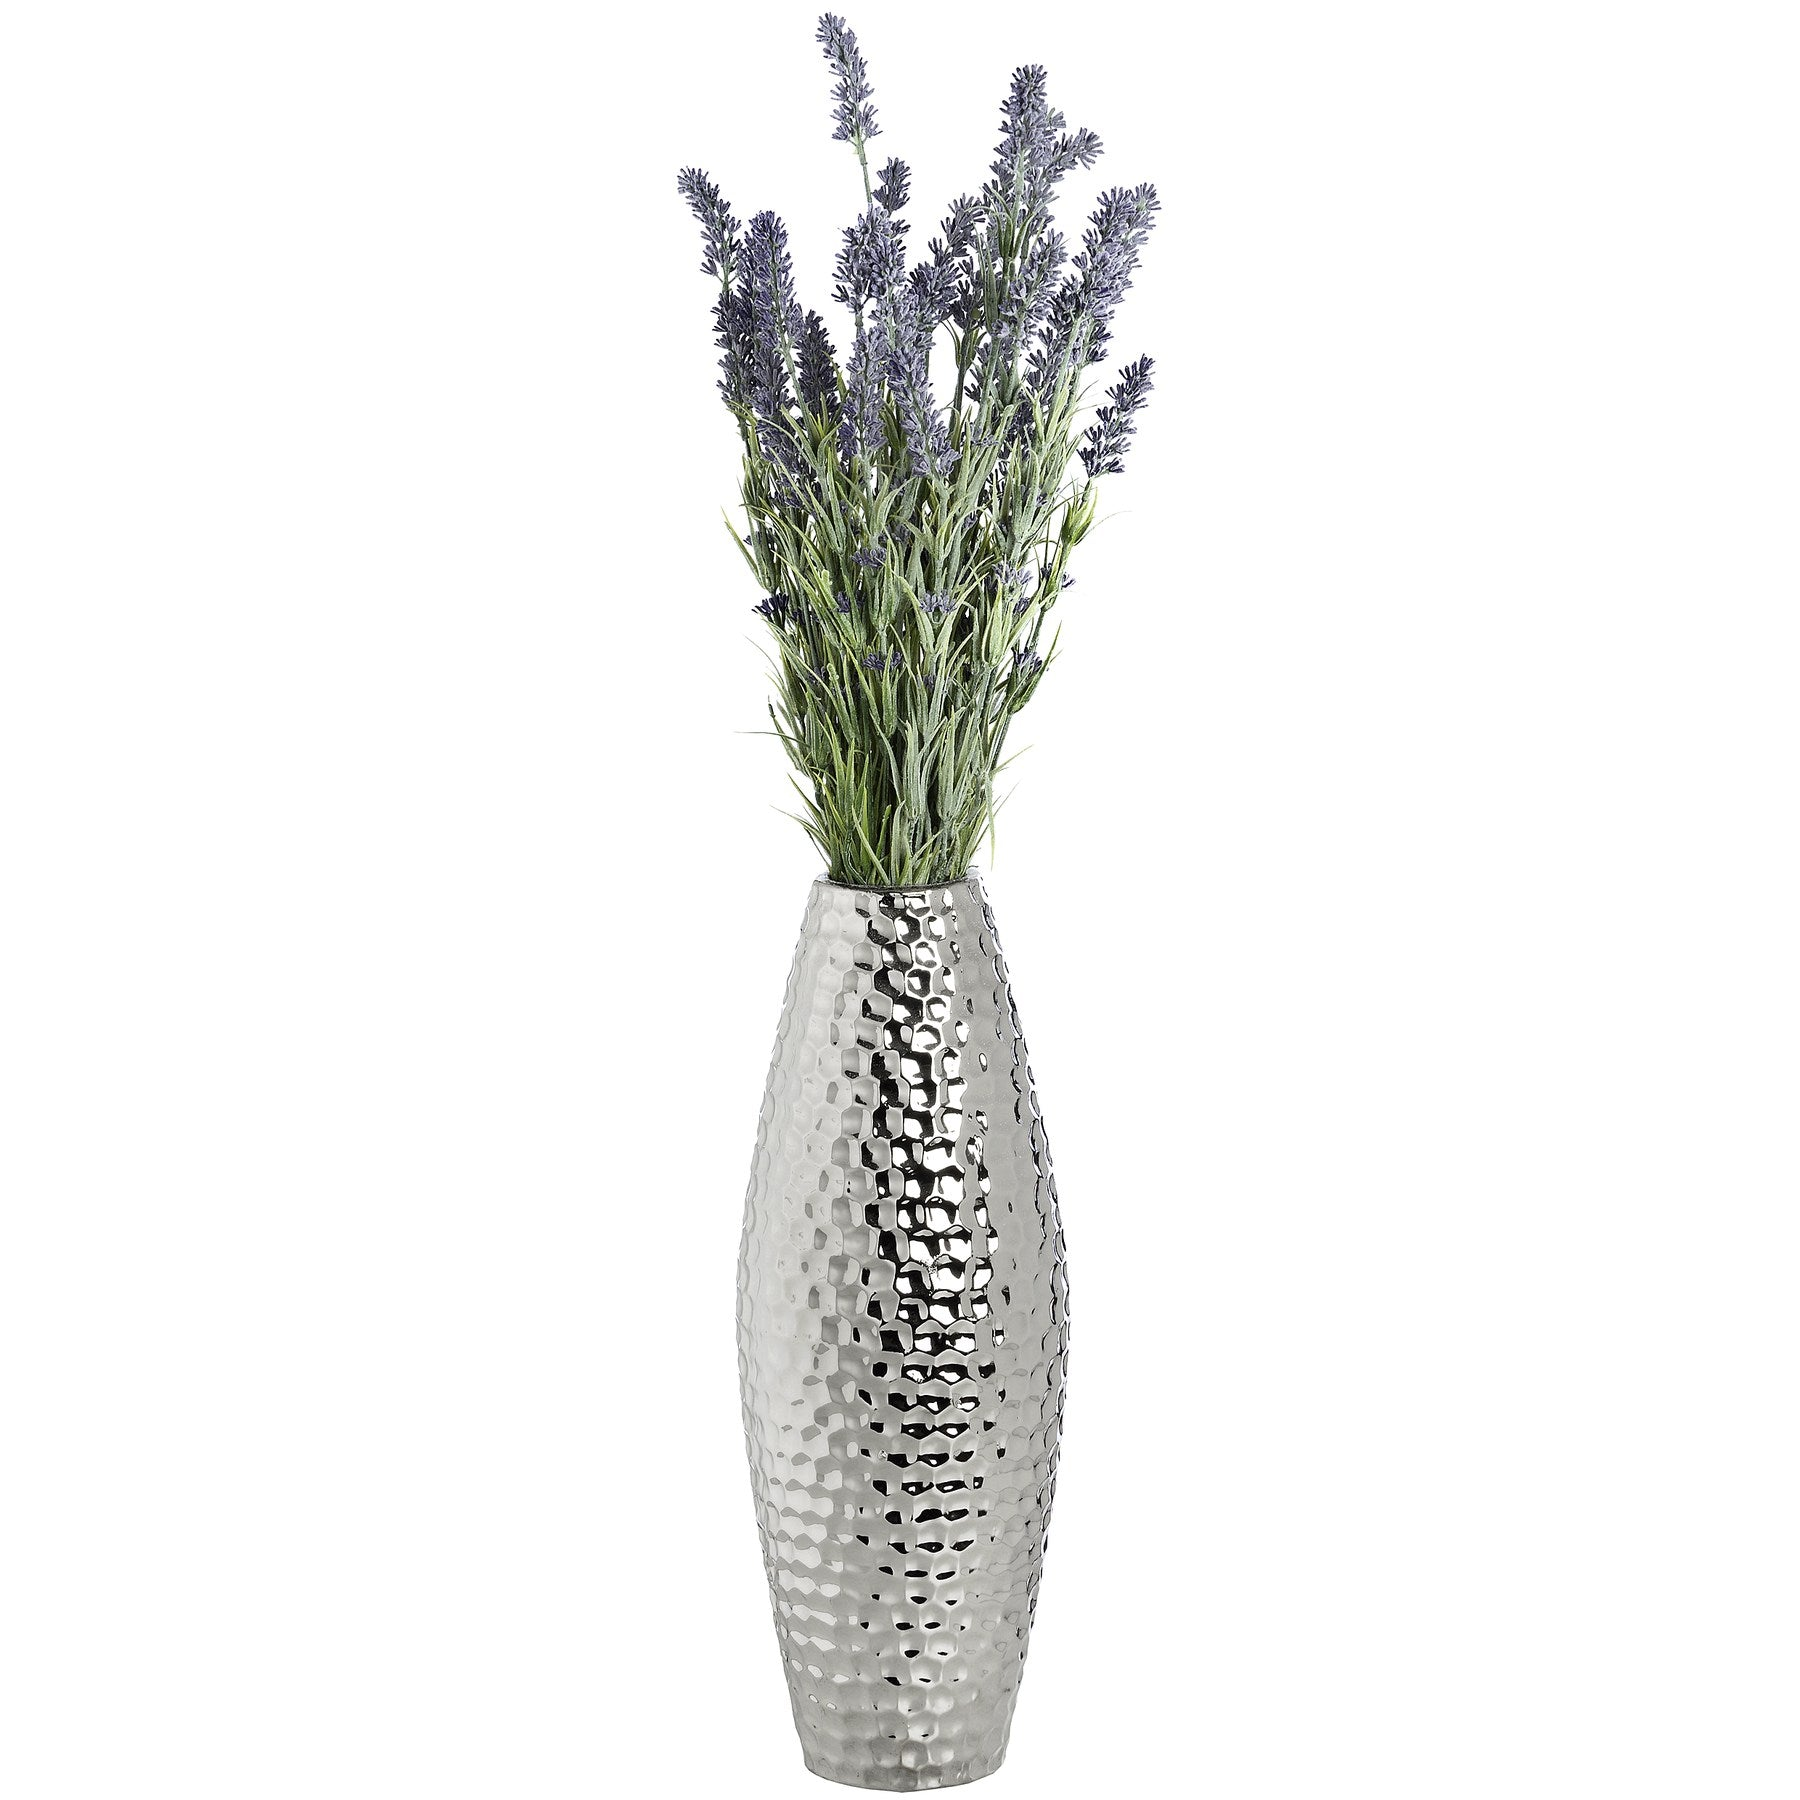 Large Silver Ceramic Vase in Dimple Effect